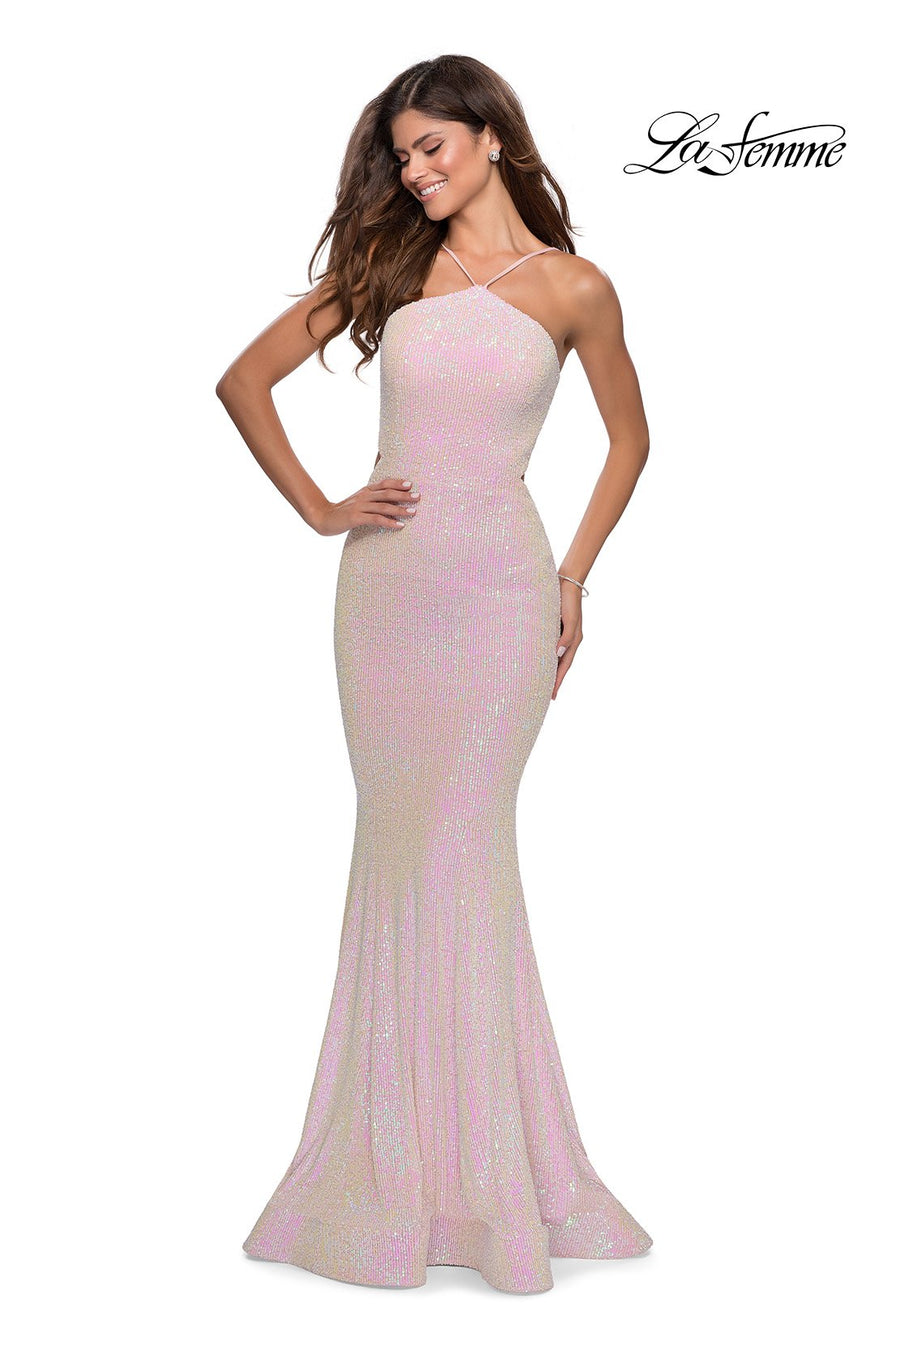 La Femme 28614 prom dress images.  La Femme 28614 is available in these colors: Light Pink.